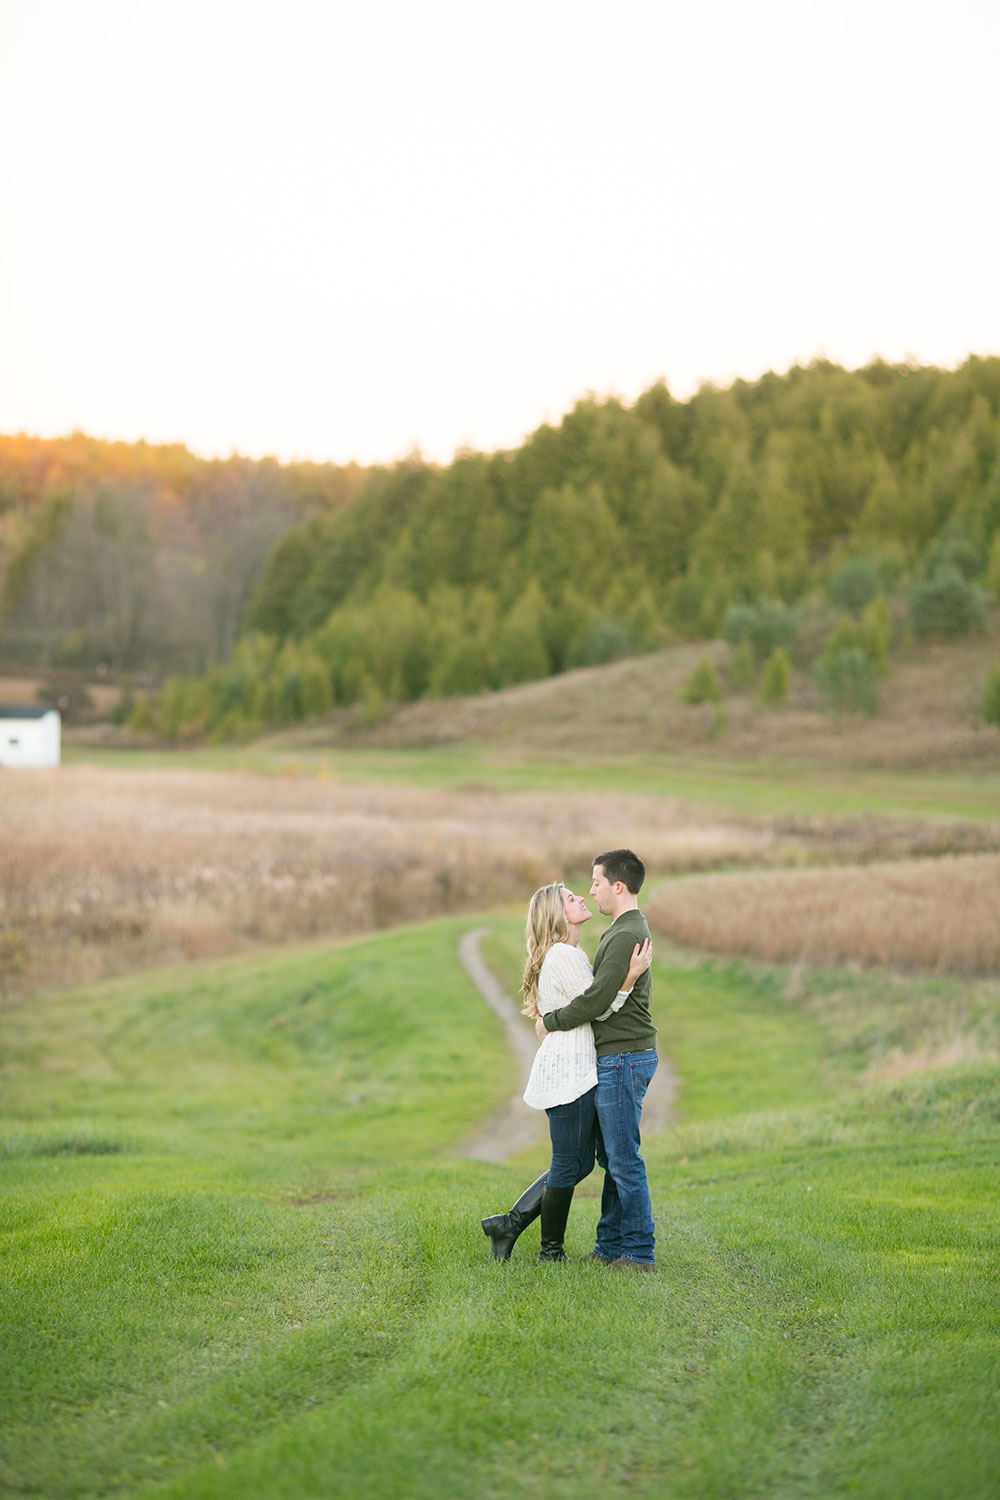 Albion-Hills-Conservation-Park-engagement-session-caledon-photo-by-philosophy-studios-eva-derrick-photography-025.jpg